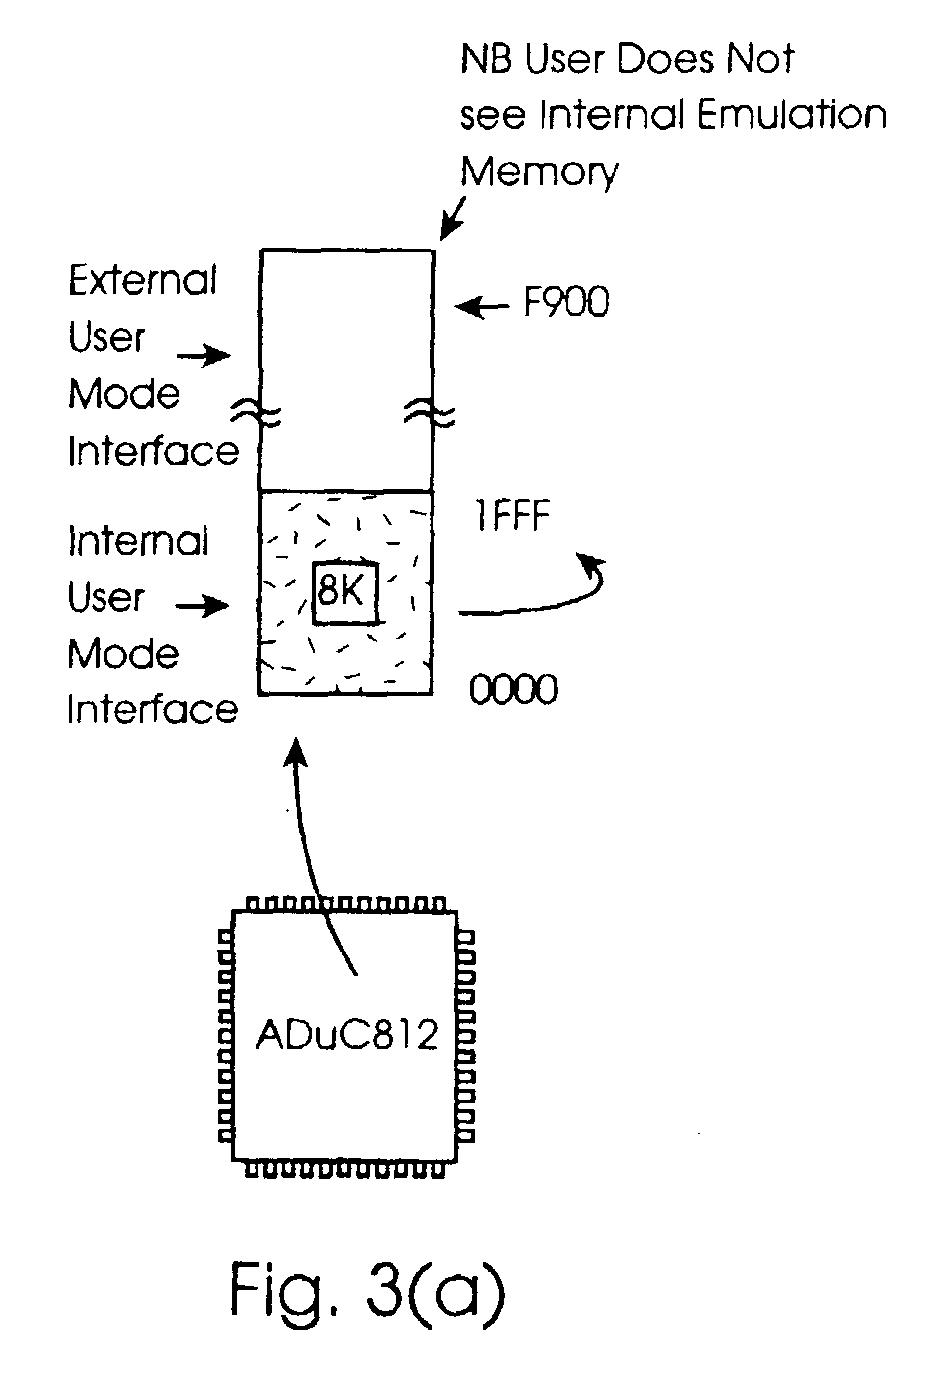 Ep0935197a2 Integrated Circuit With Embedded Emulator And Uses Of Circuits A Data Processor Is Provided In Which An Communicates Control Emulation System Using Serial Communications Link Involving One Pin